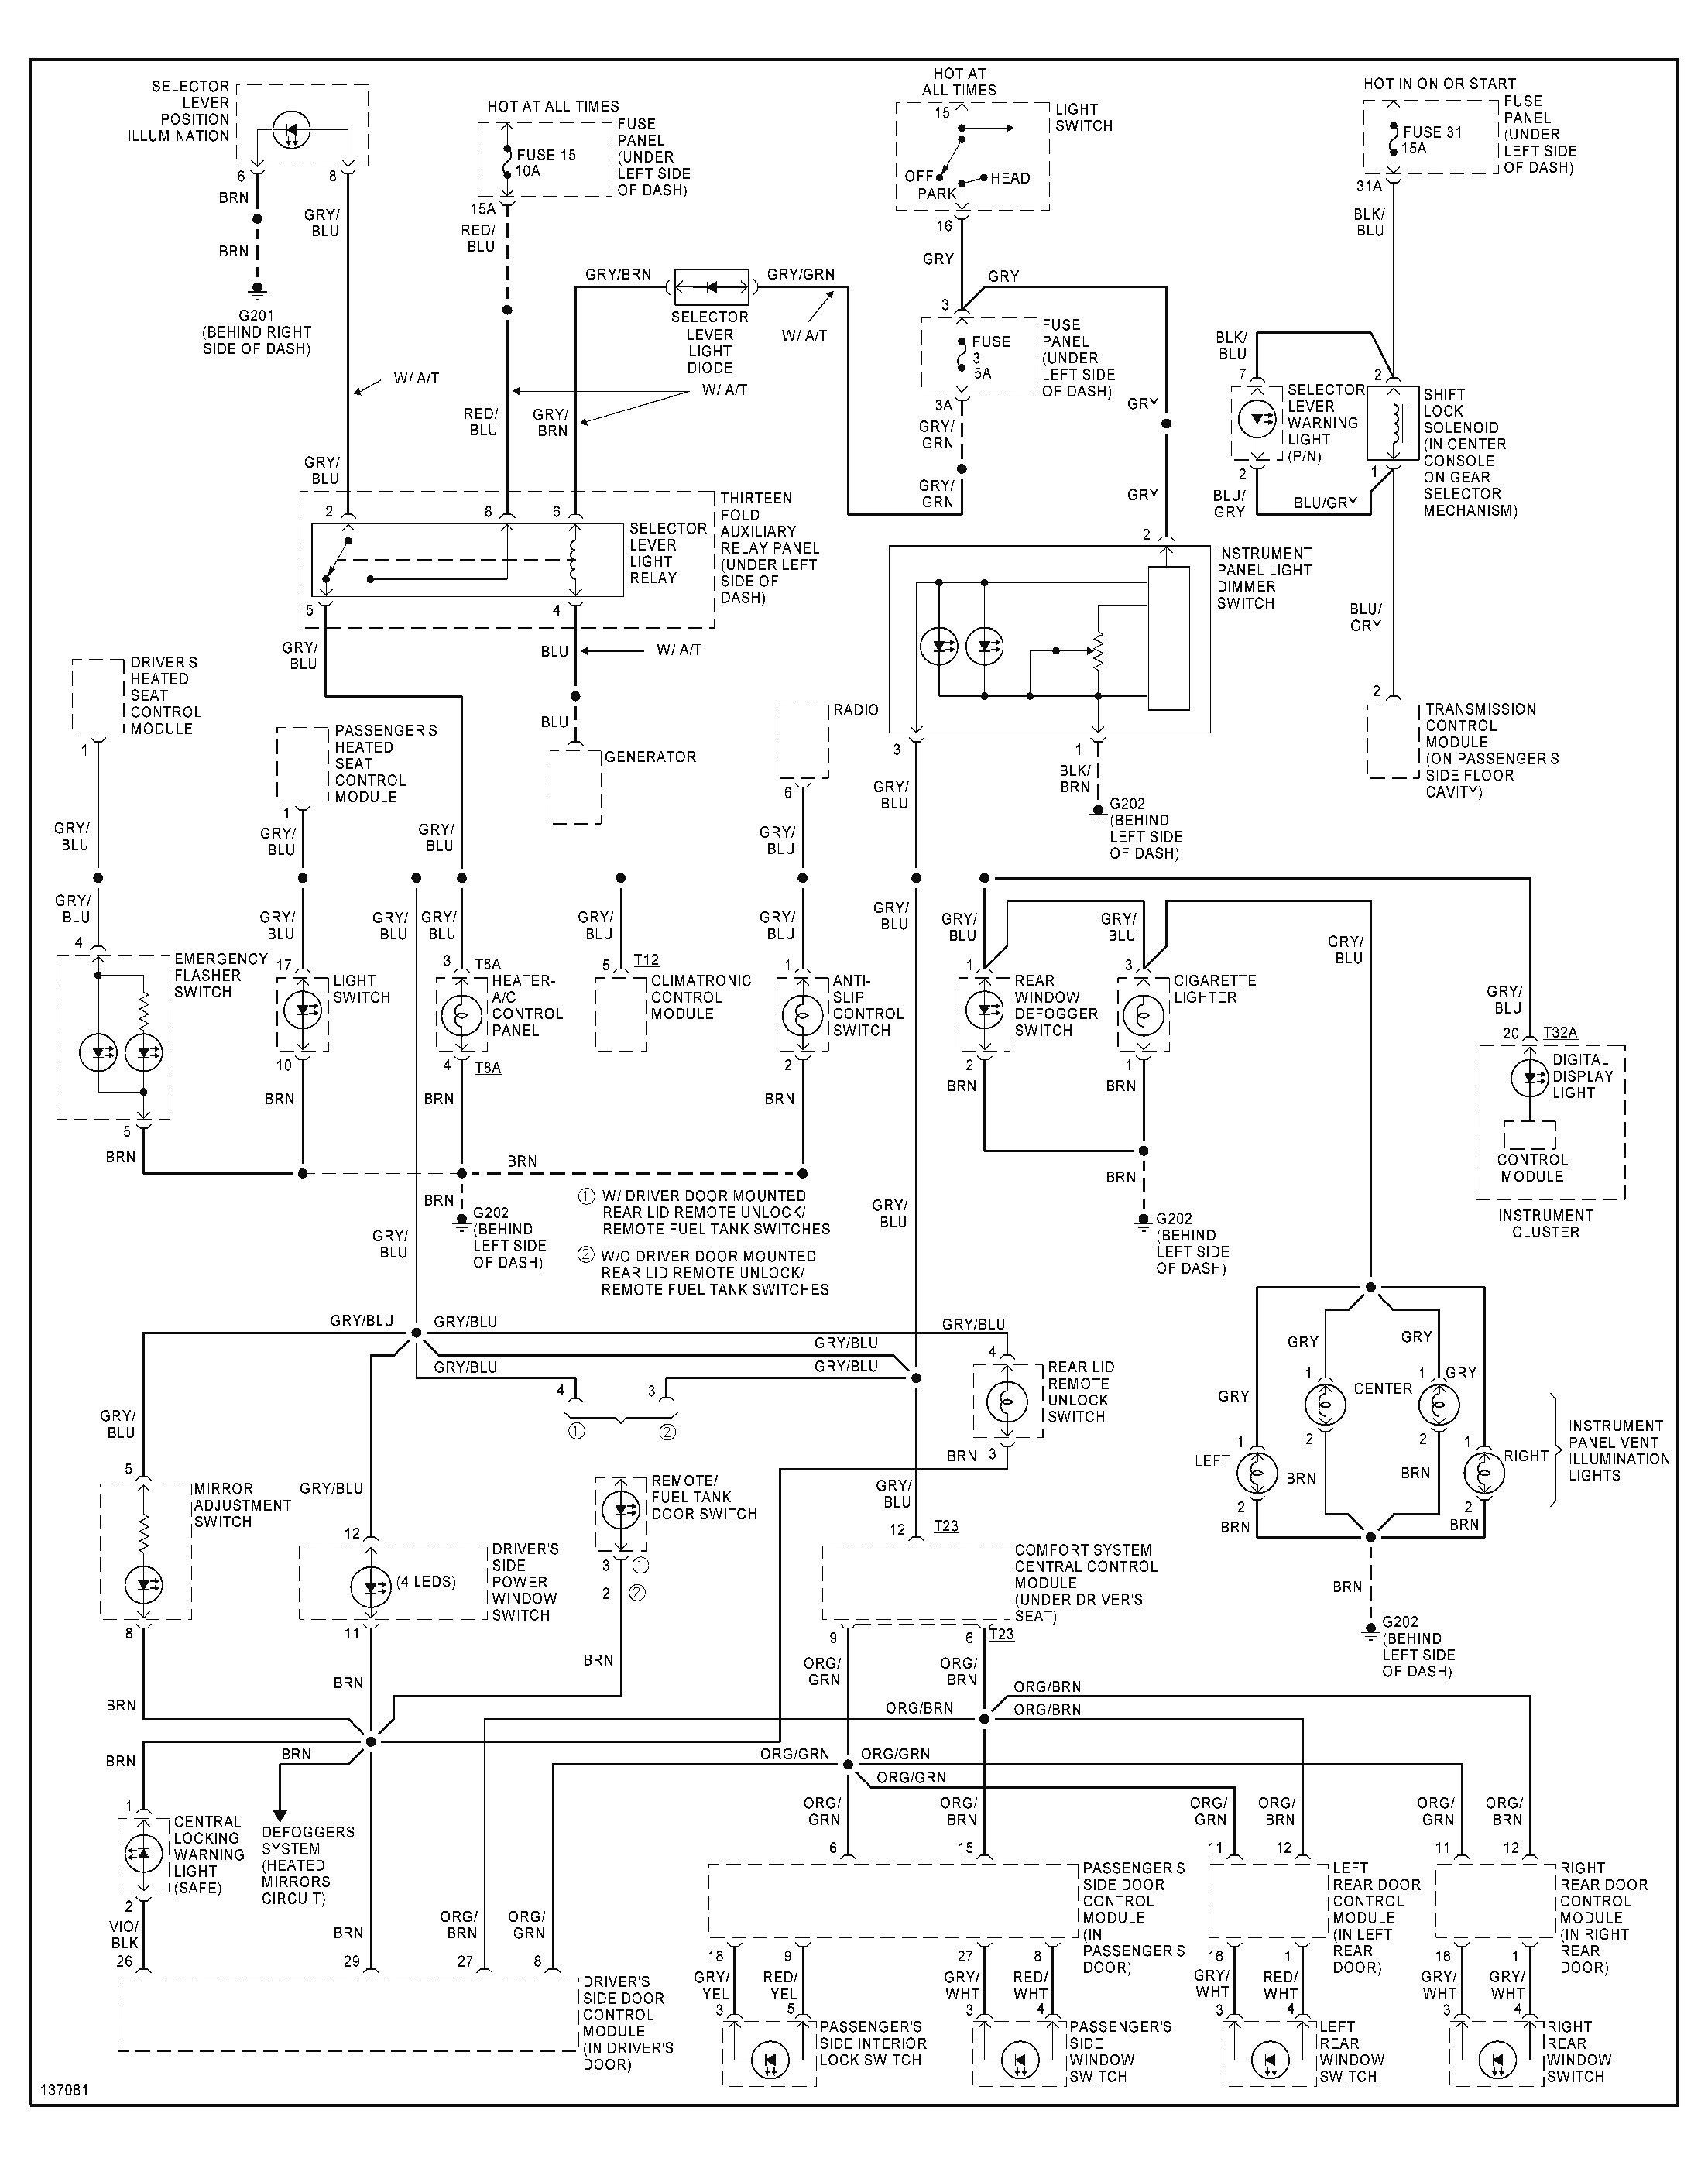 Unique 2004 Dodge Ram 1500 Headlight Wiring Diagram Diagram Diagramsample Diagramtemplate Wiringdiagram Diagramchart Electrical Diagram Jeep Grand Diagram